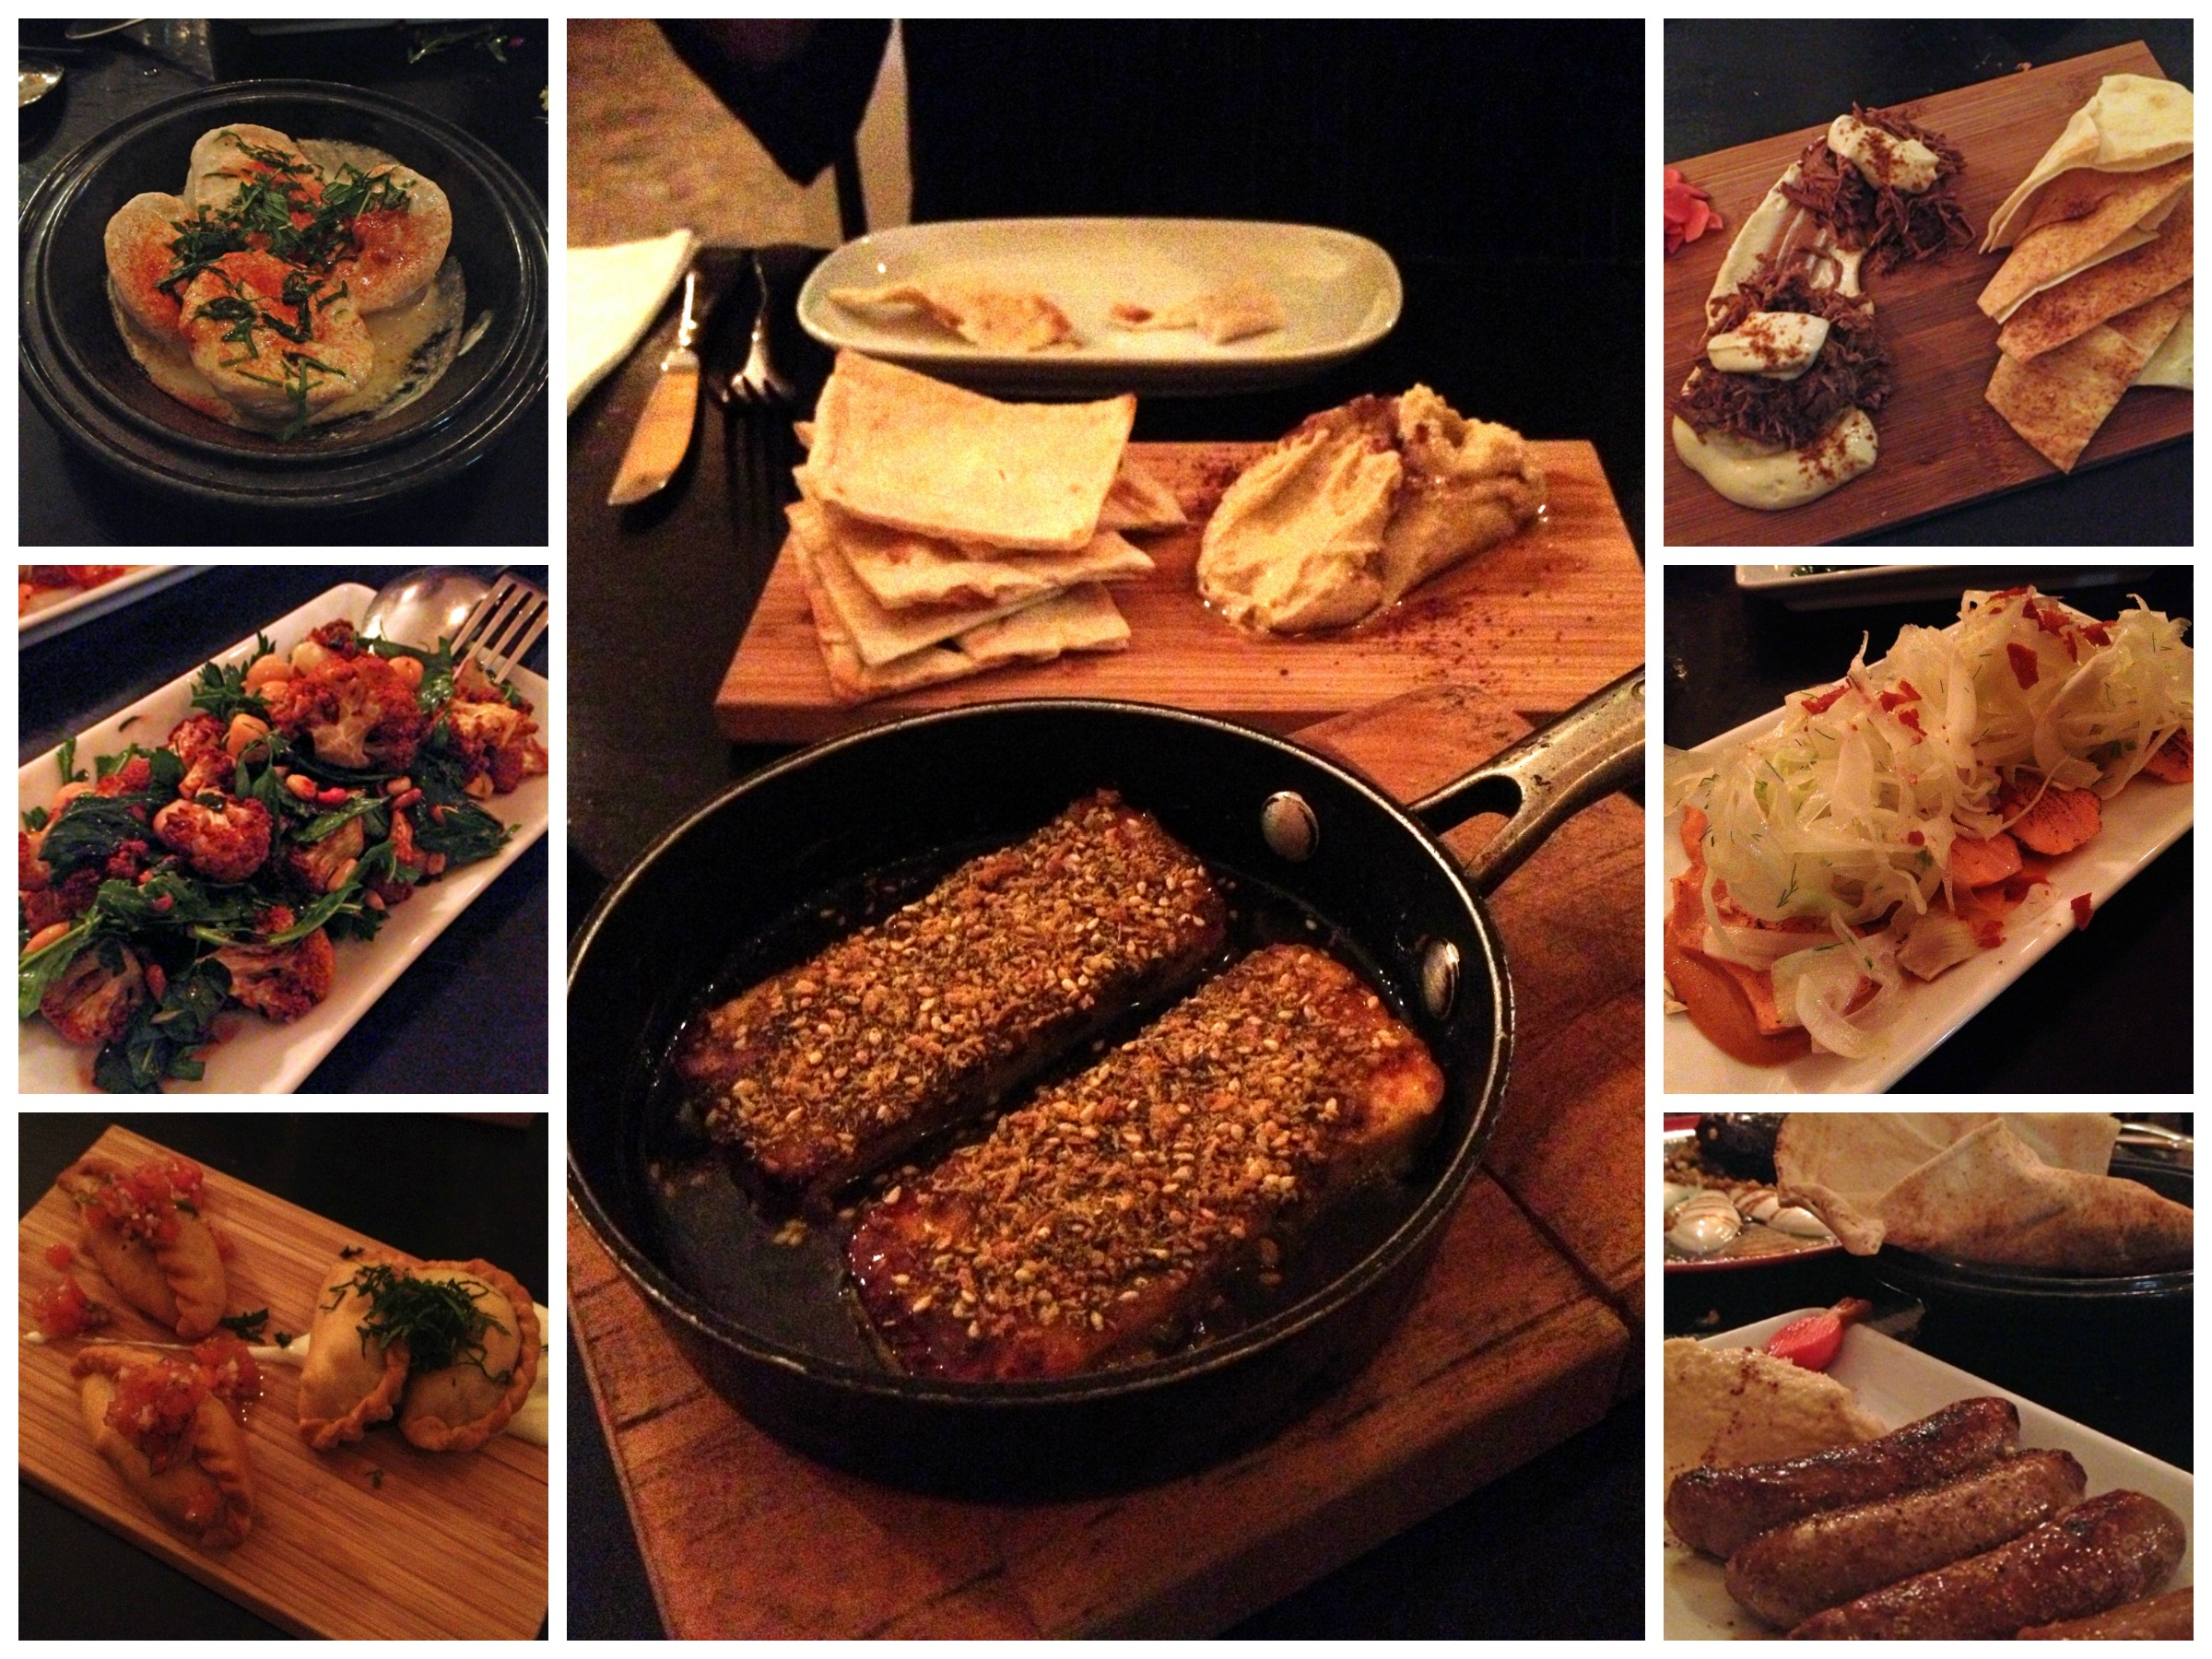 A few of the amazing dishes in Embers Mezze Bar's banquet